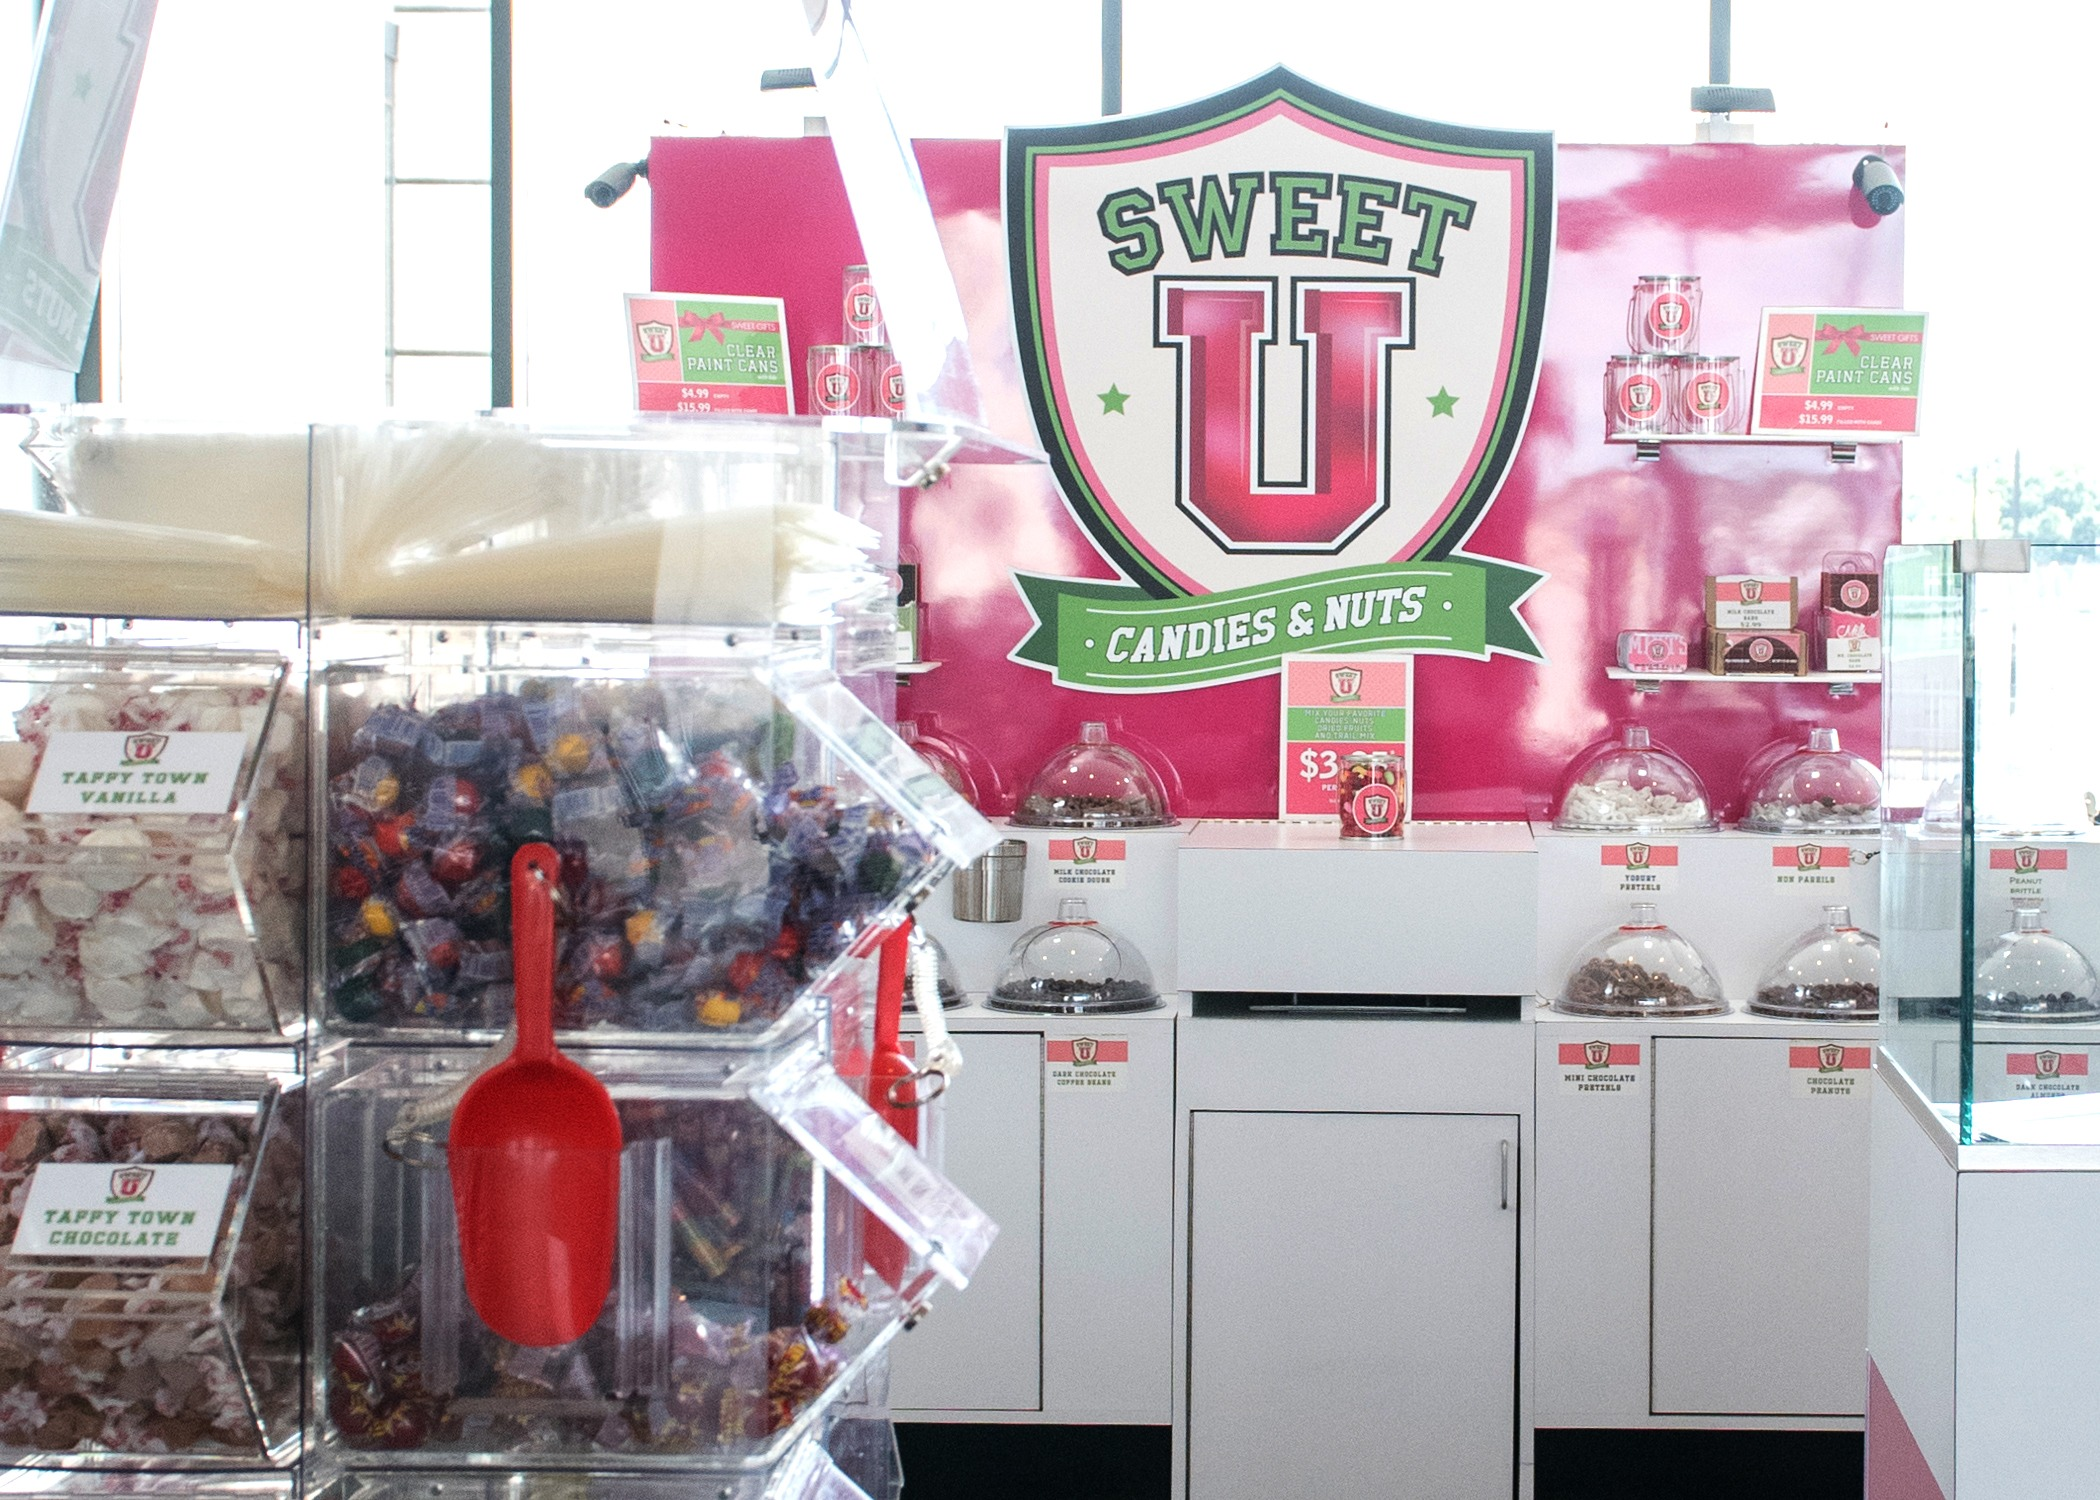 Sweet U Candies & Nuts